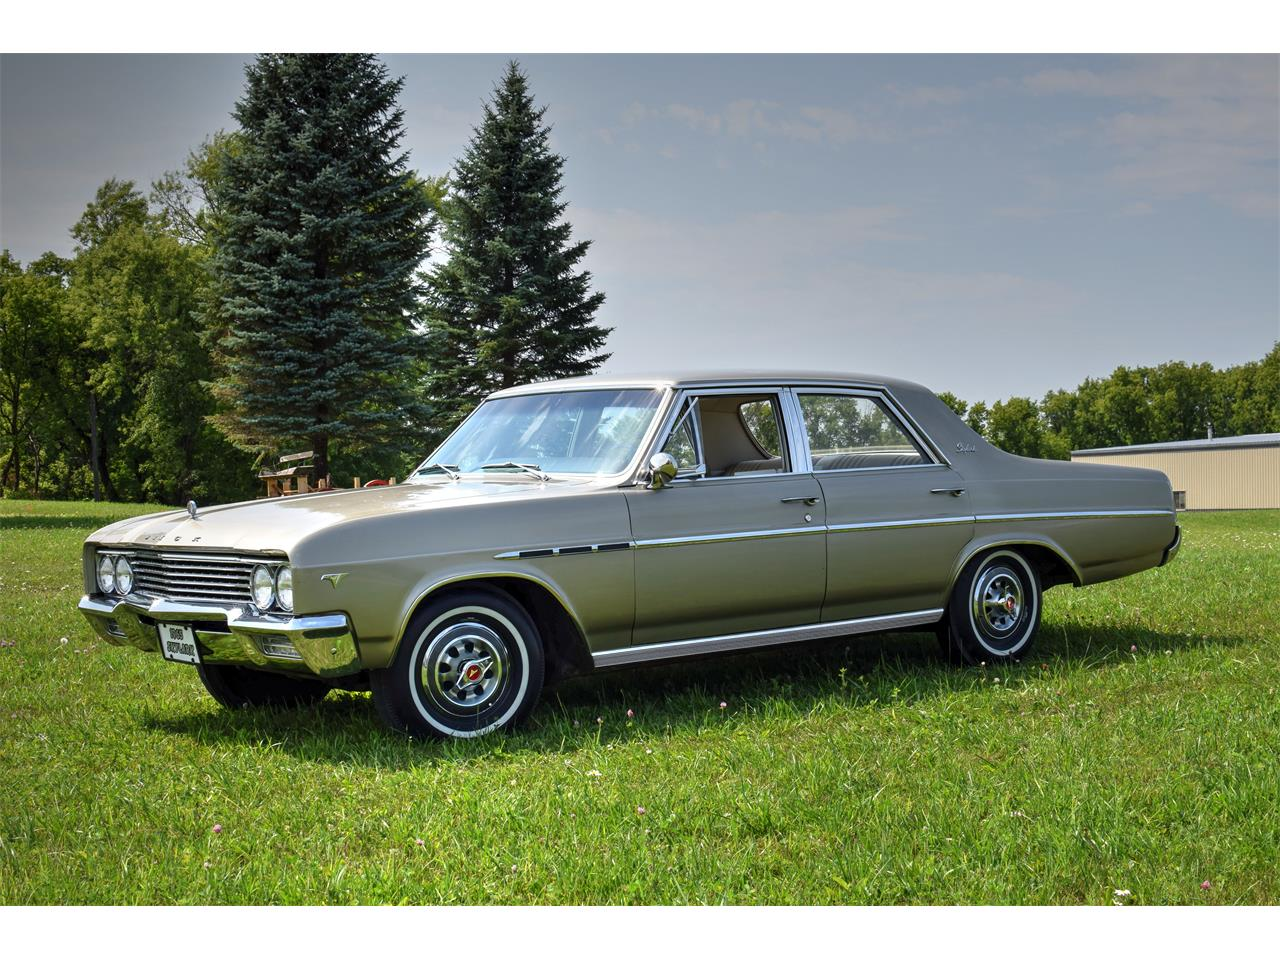 Large Picture of 1965 Buick Skylark - $7,500.00 Offered by Hooked On Classics - LHFH